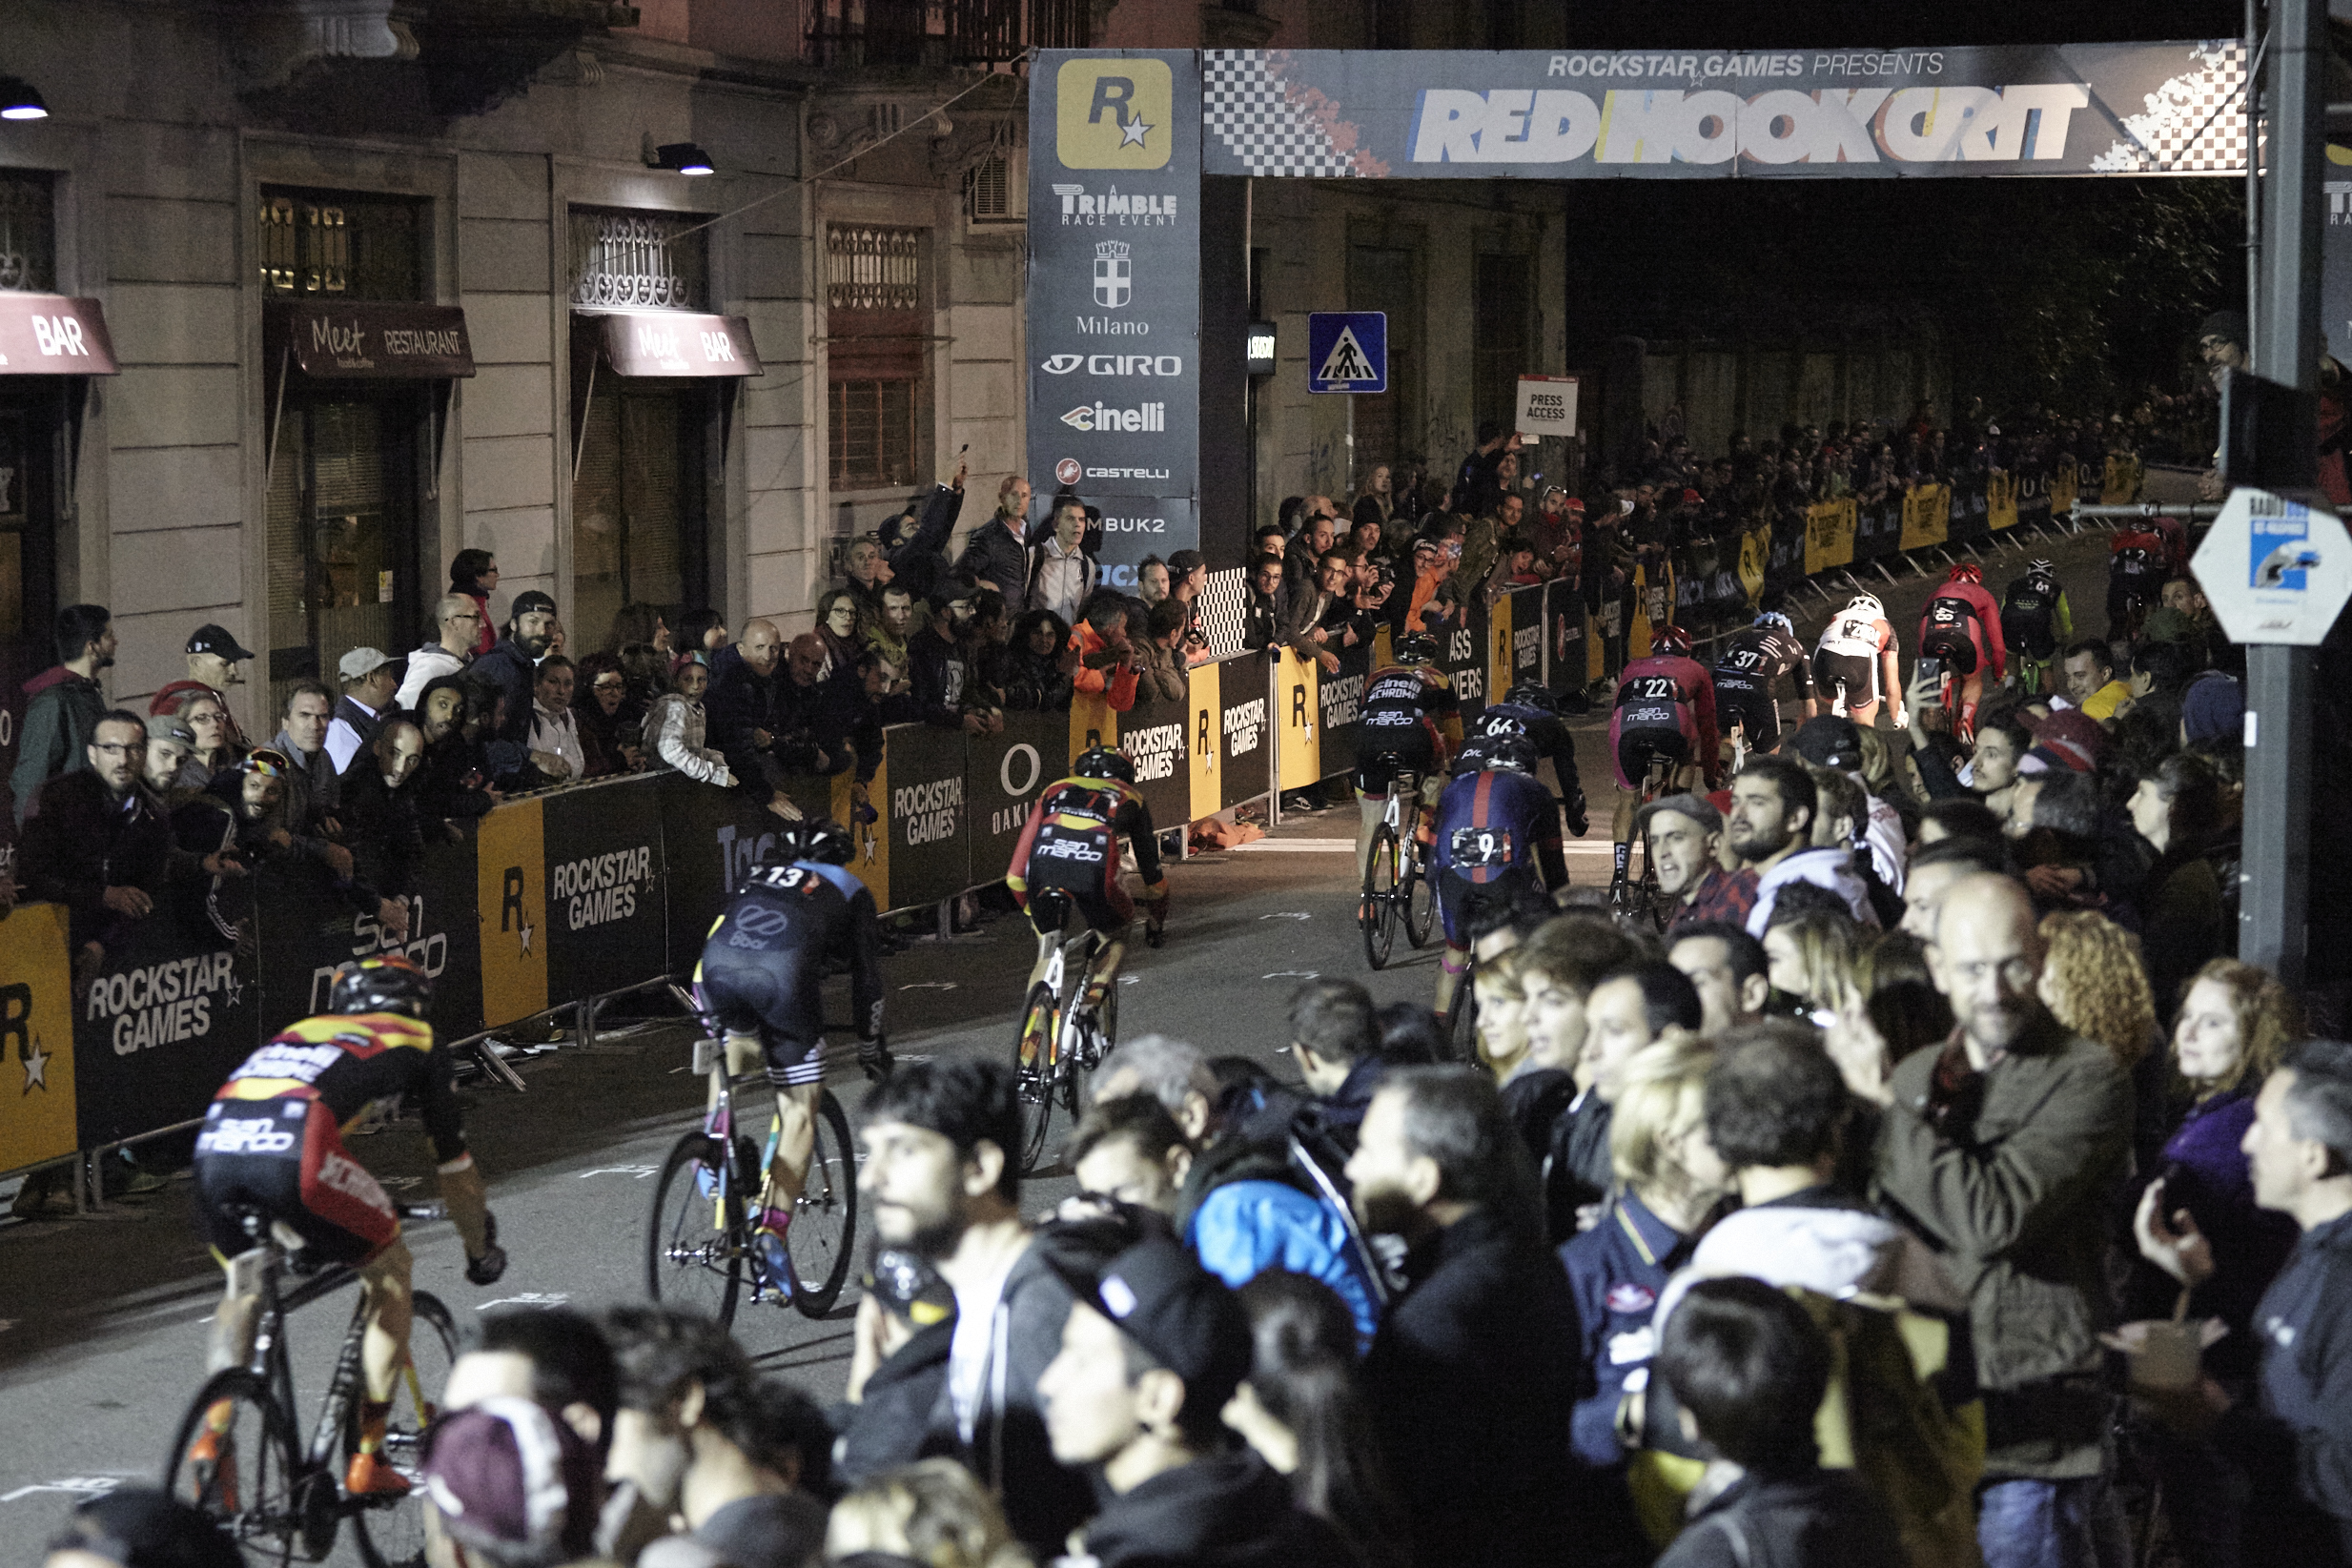 8bar team red hook crit milan 8757 1 - 8bar at Red Hook Criterium Milan 2015